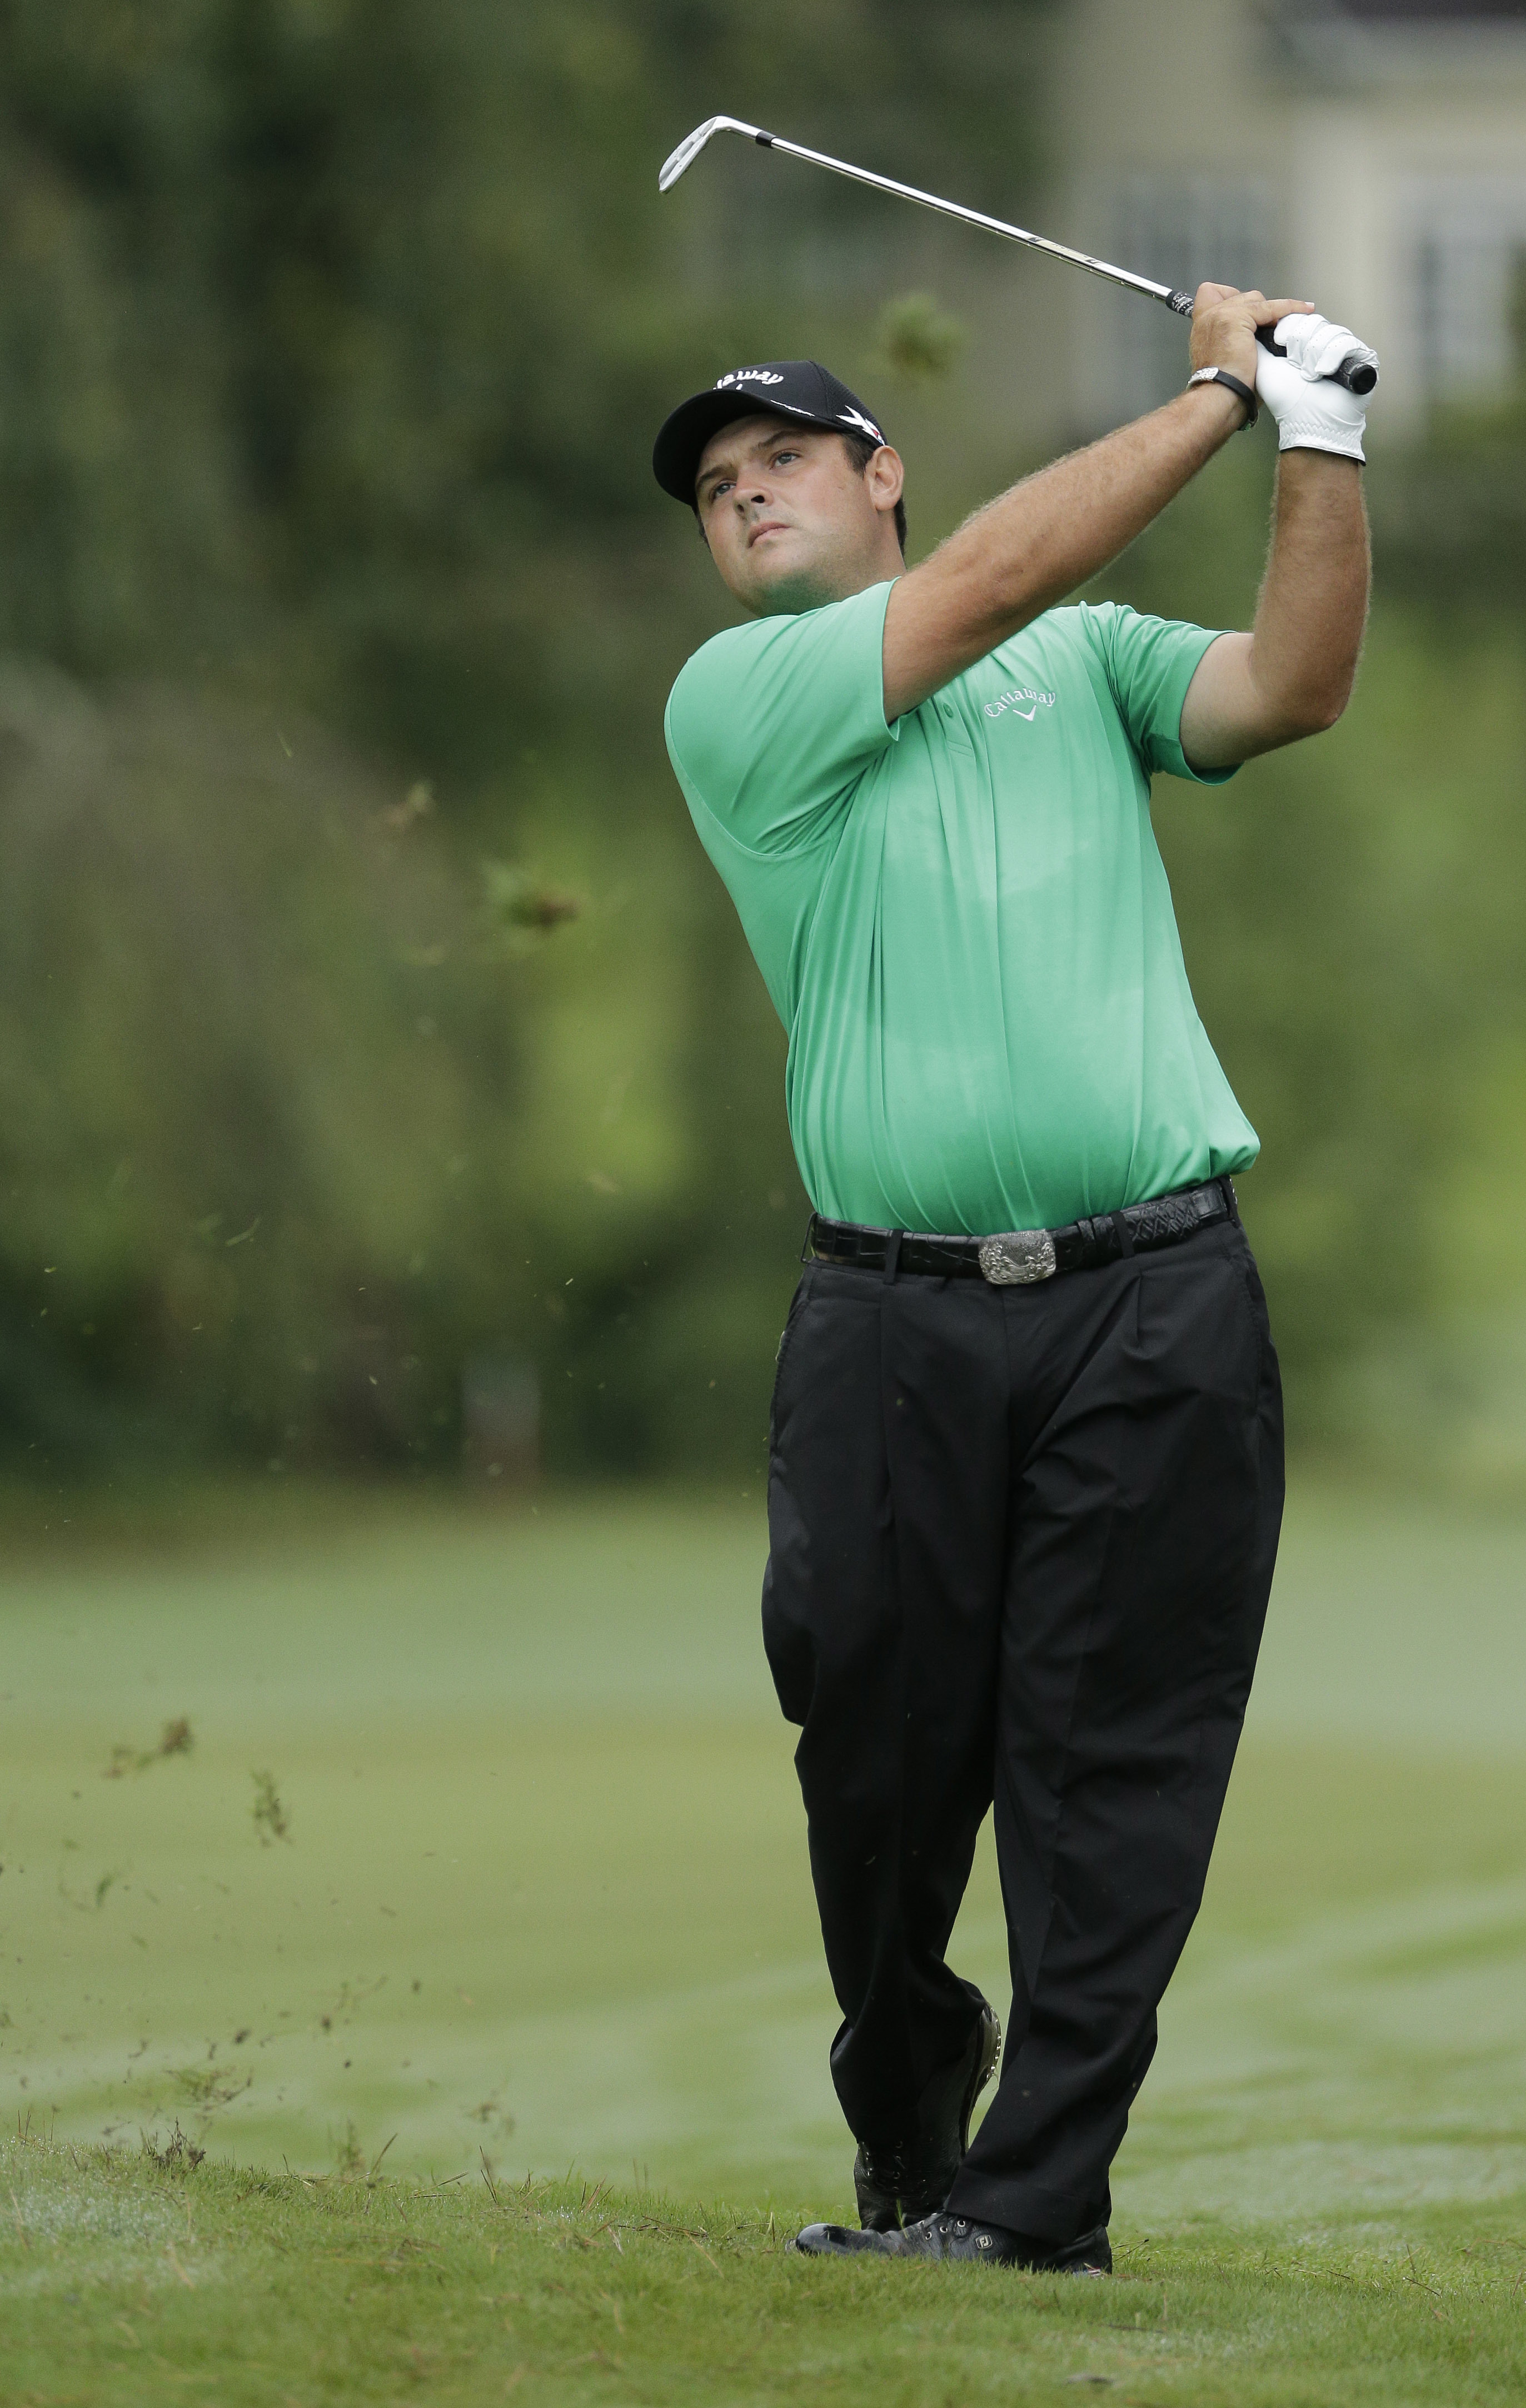 Patrick Reed watches his approach shot to the 10th hole during the first round of the Wyndham Championship golf tournament in Greensboro, N.C., Thursday, Aug. 18, 2016. (AP Photo/Chuck Burton)